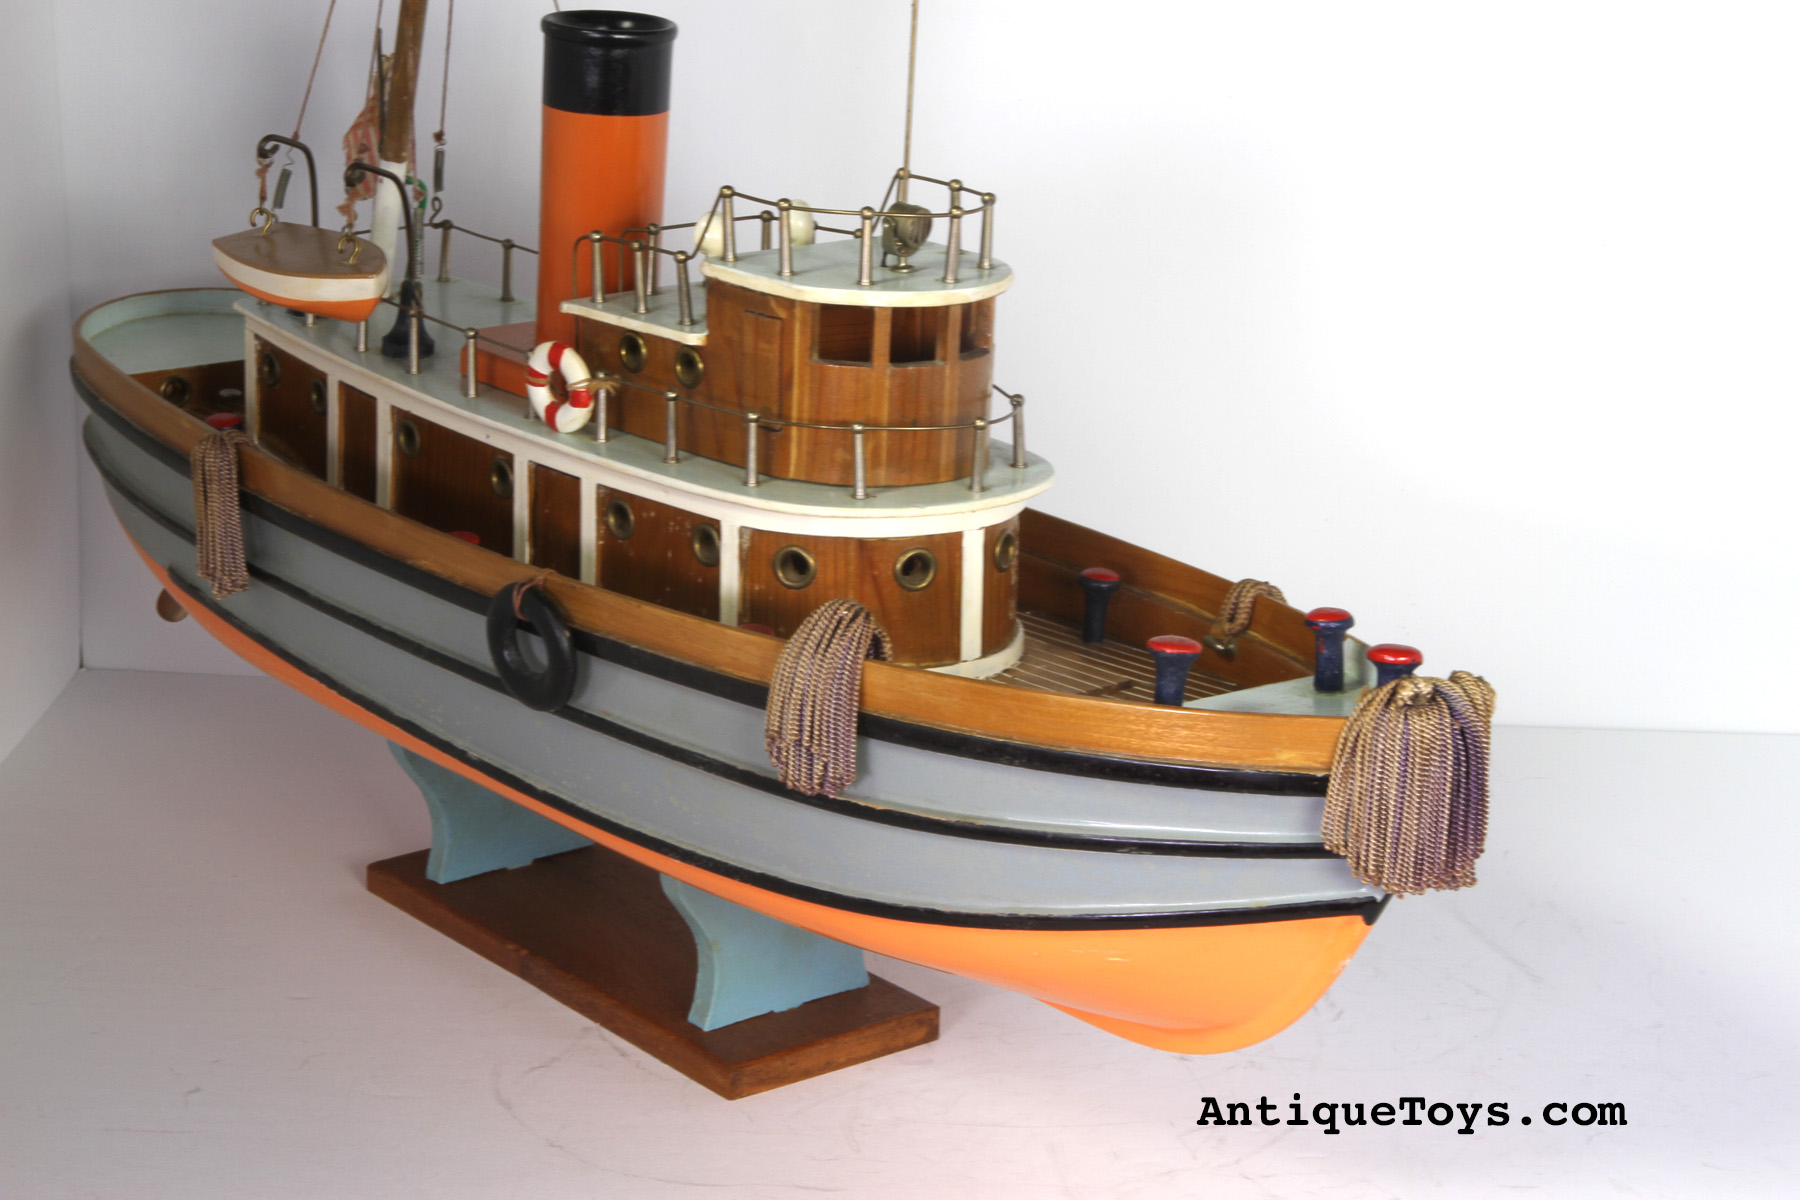 Japanese Wooden Tug Boat Toy - Antique Toys for Sale